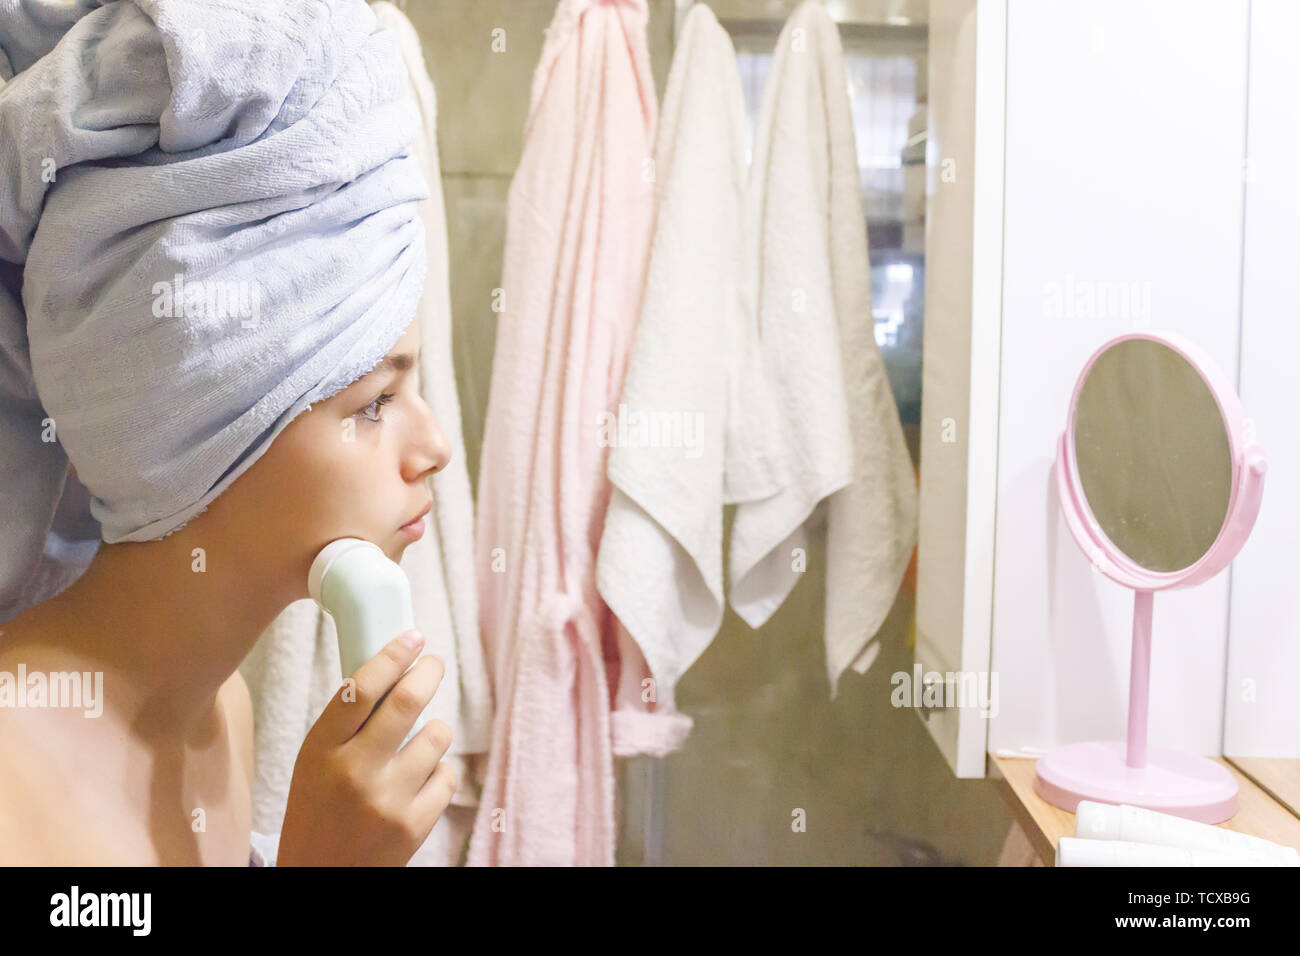 Young beautiful teen girl in towel making facial massage by herself - Stock Image